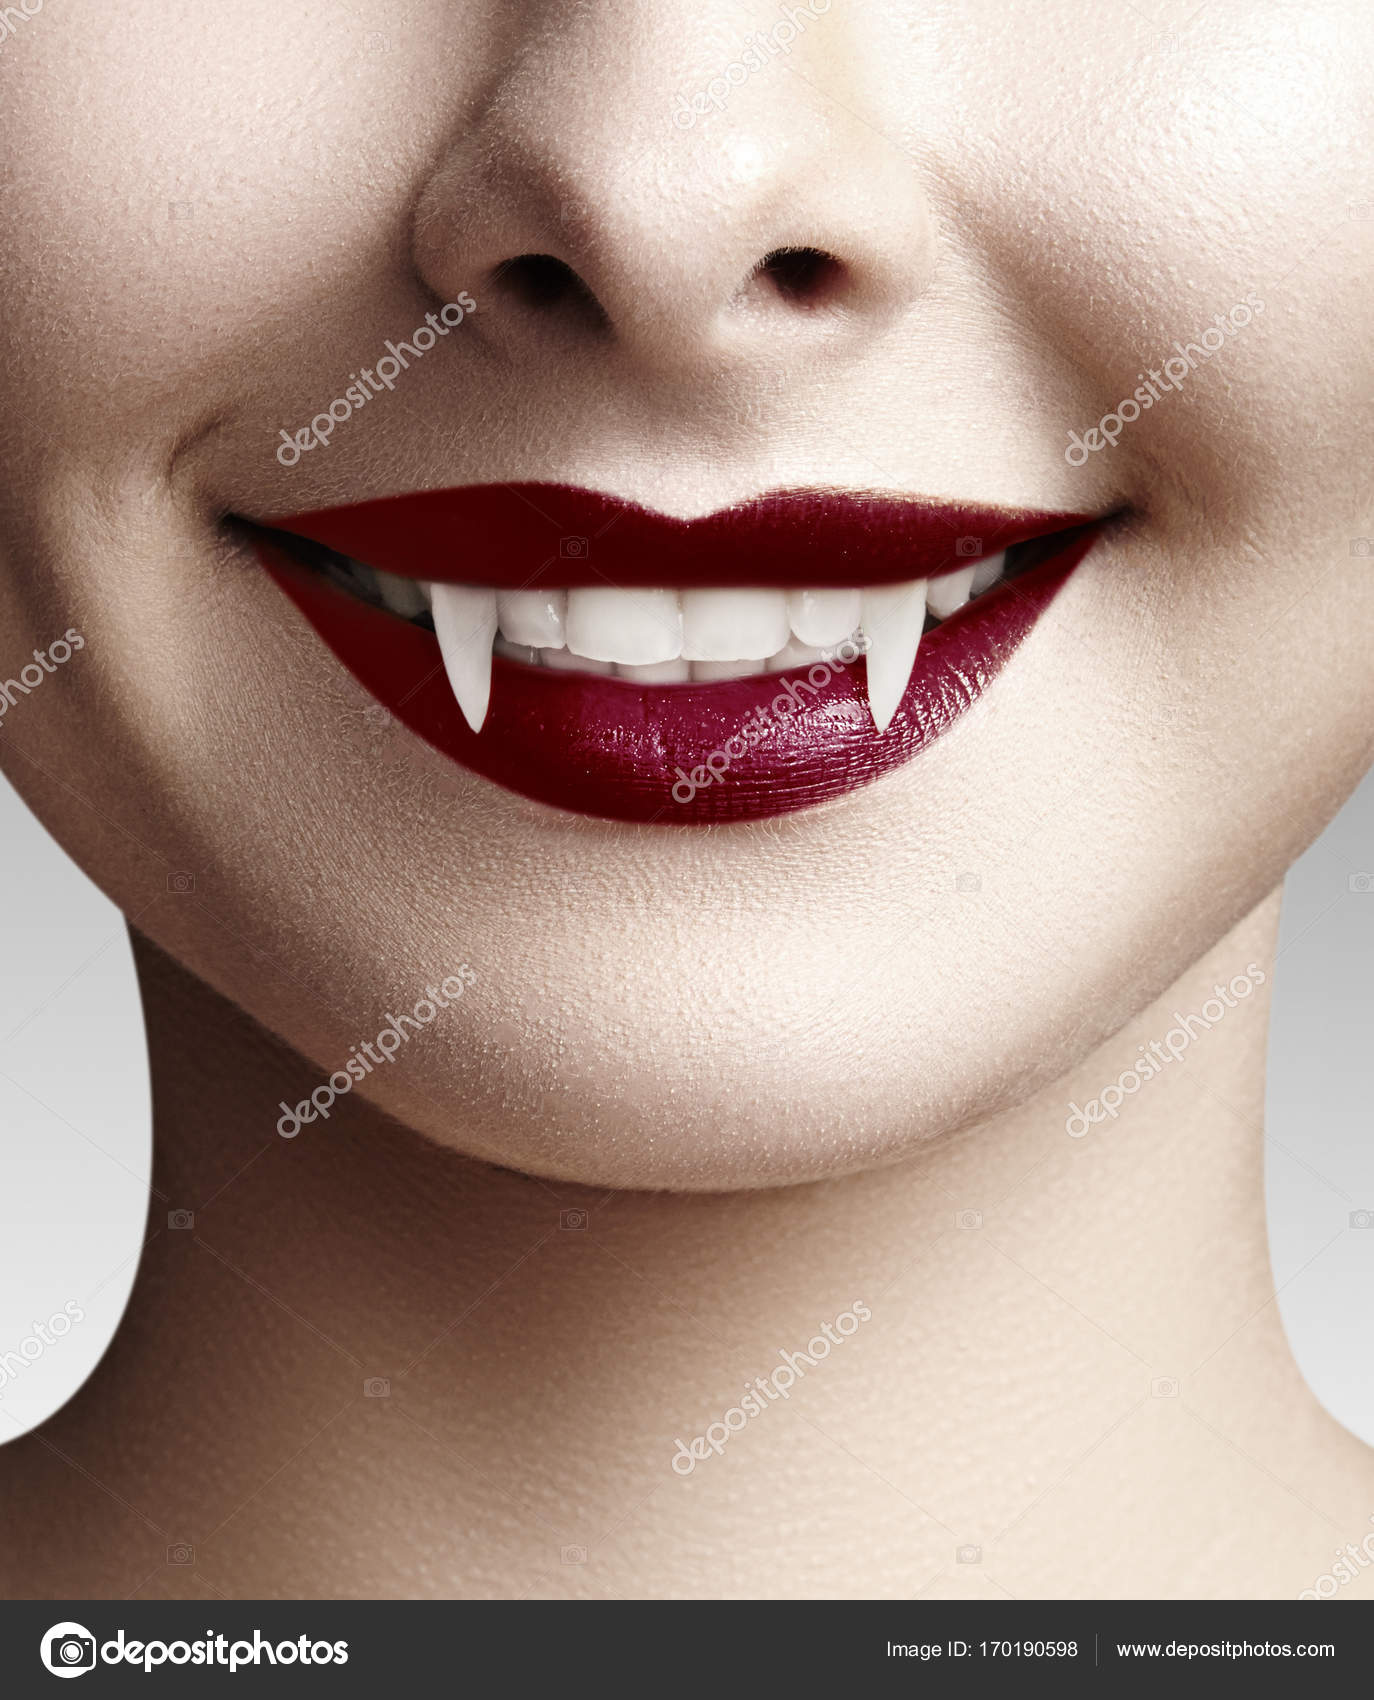 Sexy woman blood on mouth